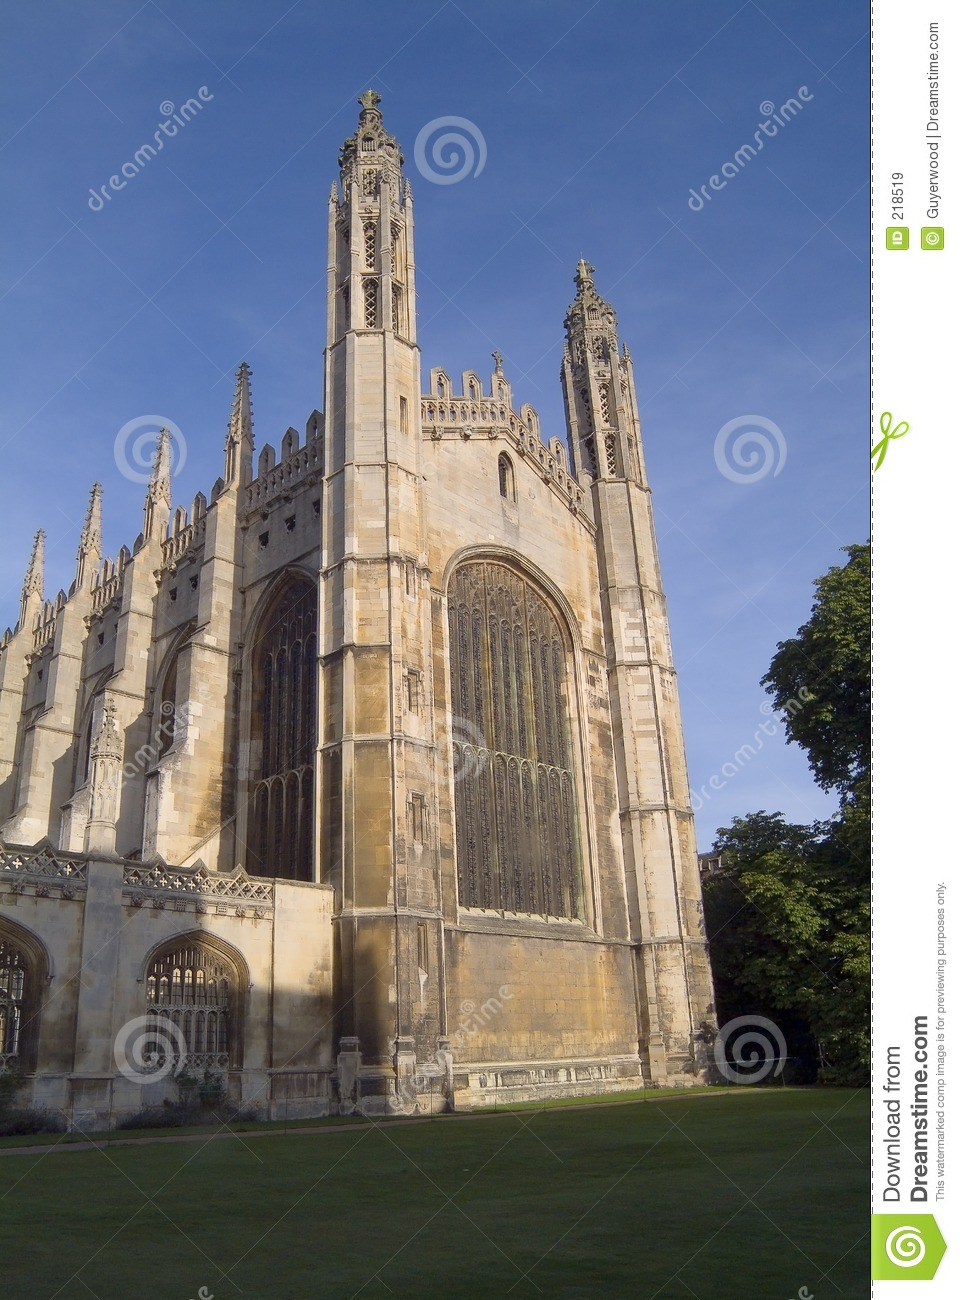 College Chapel, Cambridge del re. Verso est parte anteriore